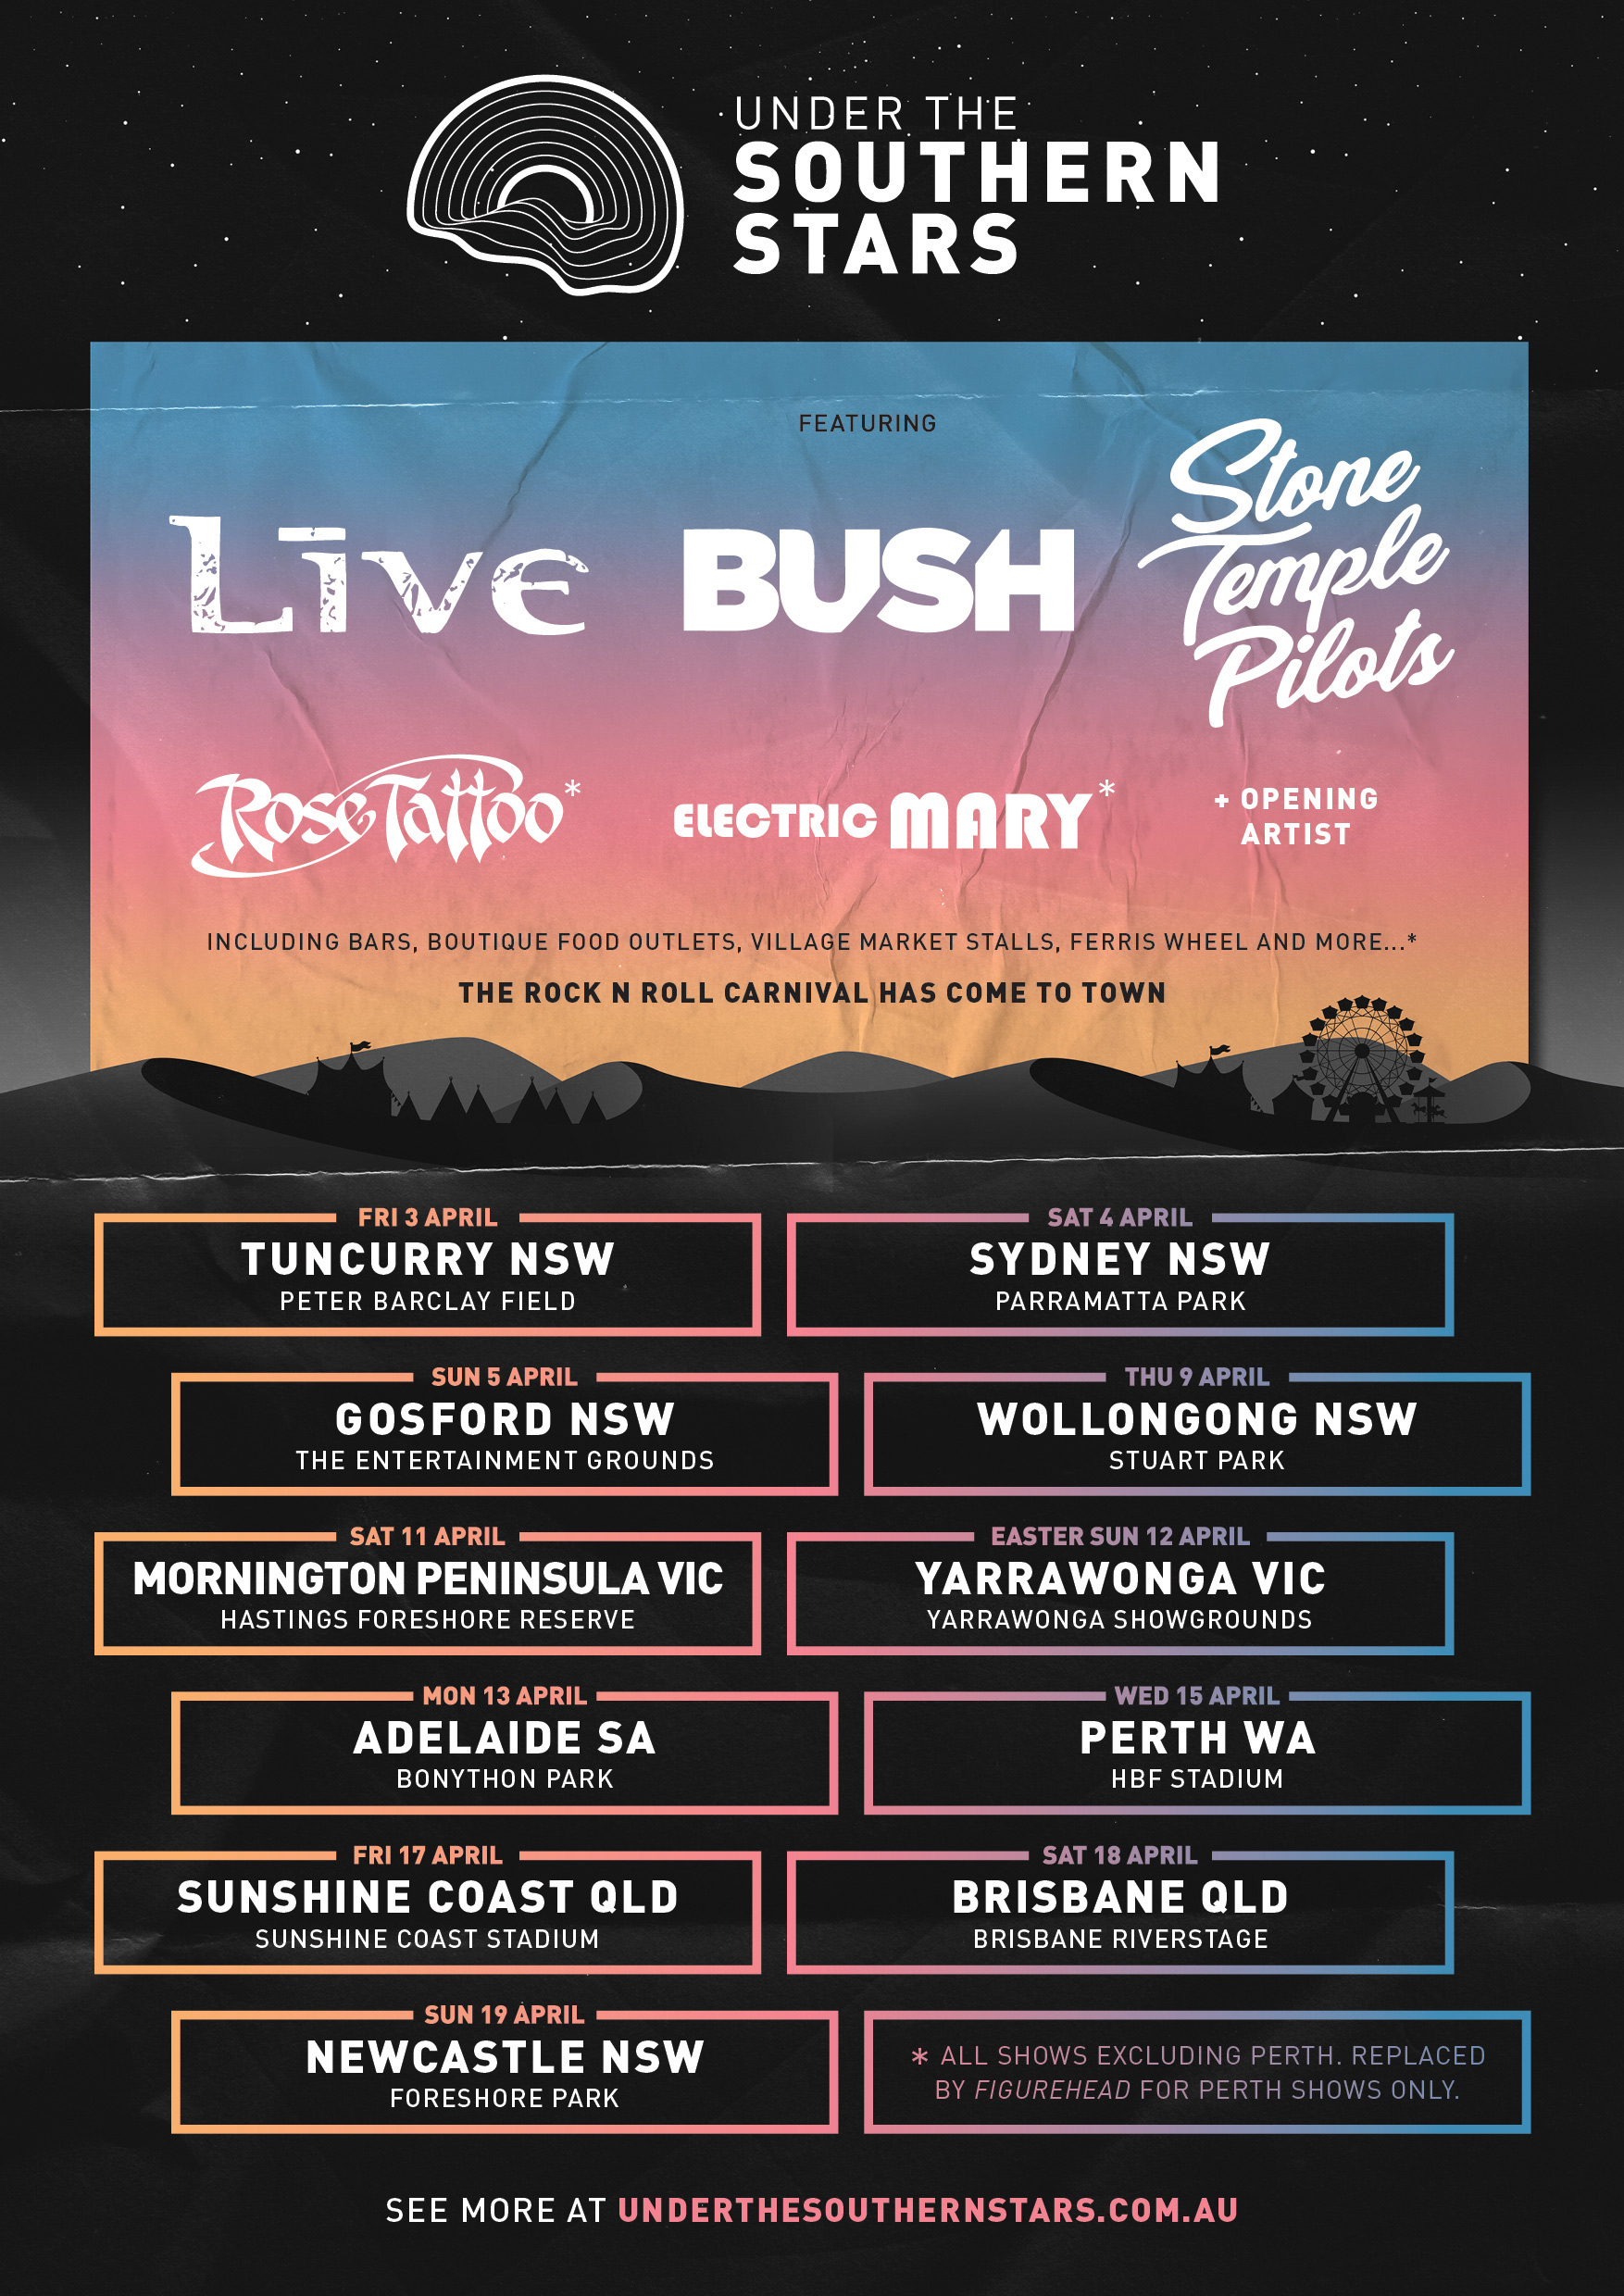 We are thrilled to announce 'Under The Southern Stars' a co-headlining tour with +LIVE+ and Bush coming to Australia in April 2020!!  STONE TEMPLE PILOTS, +LIVE+ & BUSH will be performing together for the first time in Australia! Joined by Rose Tattoo, Electric Mary and more #UTSS2020 will be a union of music with a carnival atmosphere and is set to be one epic Rock Carnival! An all new Under The Southern Stars Village and playground as well as a VIP deck option is an experience you don't want to miss. Pre-sales begin  September 5th-8th  and tickets go on sale to the general public  September 9th ! Stay tuned for exclusive pre-sale access! Full tour & ticketing information at  www.underthesouthernstars.com.au   Australia, we can't wait to see you at #UTSS2020 next year!!  Dates:  Friday, April 3 : Peter Barclay Field, Tuncurry NSW  Saturday, April 4 : The Crescent, Parramatta Park, NSW  Sunday, April 5 : The Entertainment Grounds, Gosford NSW  Thursday, April 9 : Stuart Park, Wollongong NSW  Saturday, April 11 : Hastings Foreshore Reserve, Mornington VIC  Sunday, April 12 : Showgrounds, Yarrawonga VIC  Monday, April 13 : Bonython Park, Adelaide SA  Wednesday, April 15 : HBF Stadium, Perth WA – Not a UTSS Festival Date  Friday, April 17 : Sunshine Coast Stadium, Sunshine Coast QLD  Saturday, April 18 : Riverstage, Brisbane QLD  Sunday, April 19 : Foreshore Park, Newcastle NSW #UTSS2020 #stonetemplepilots